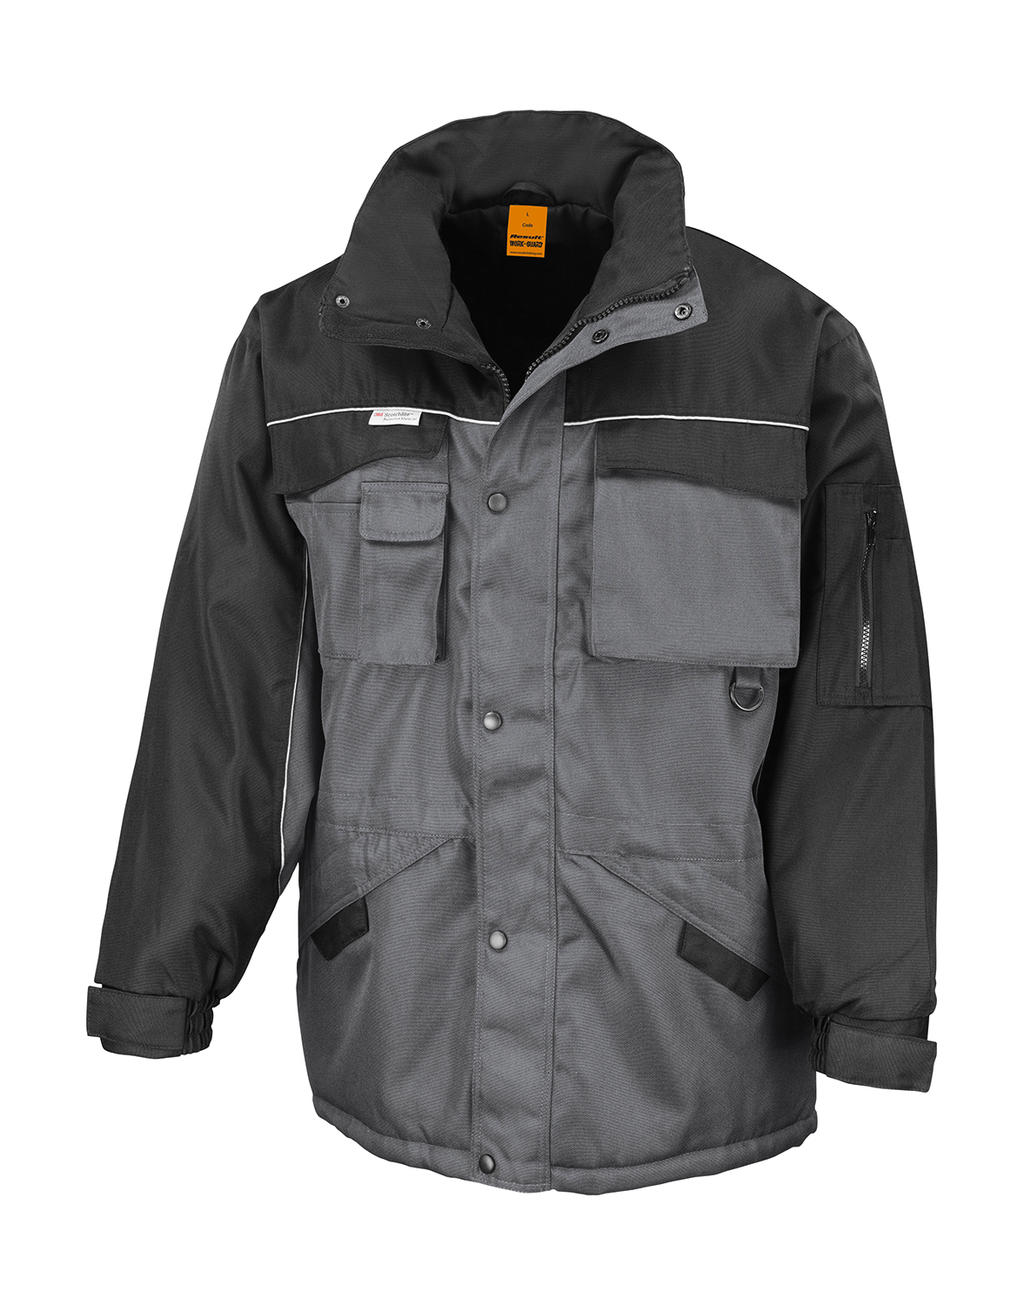 Heavy Duty Combo Coat